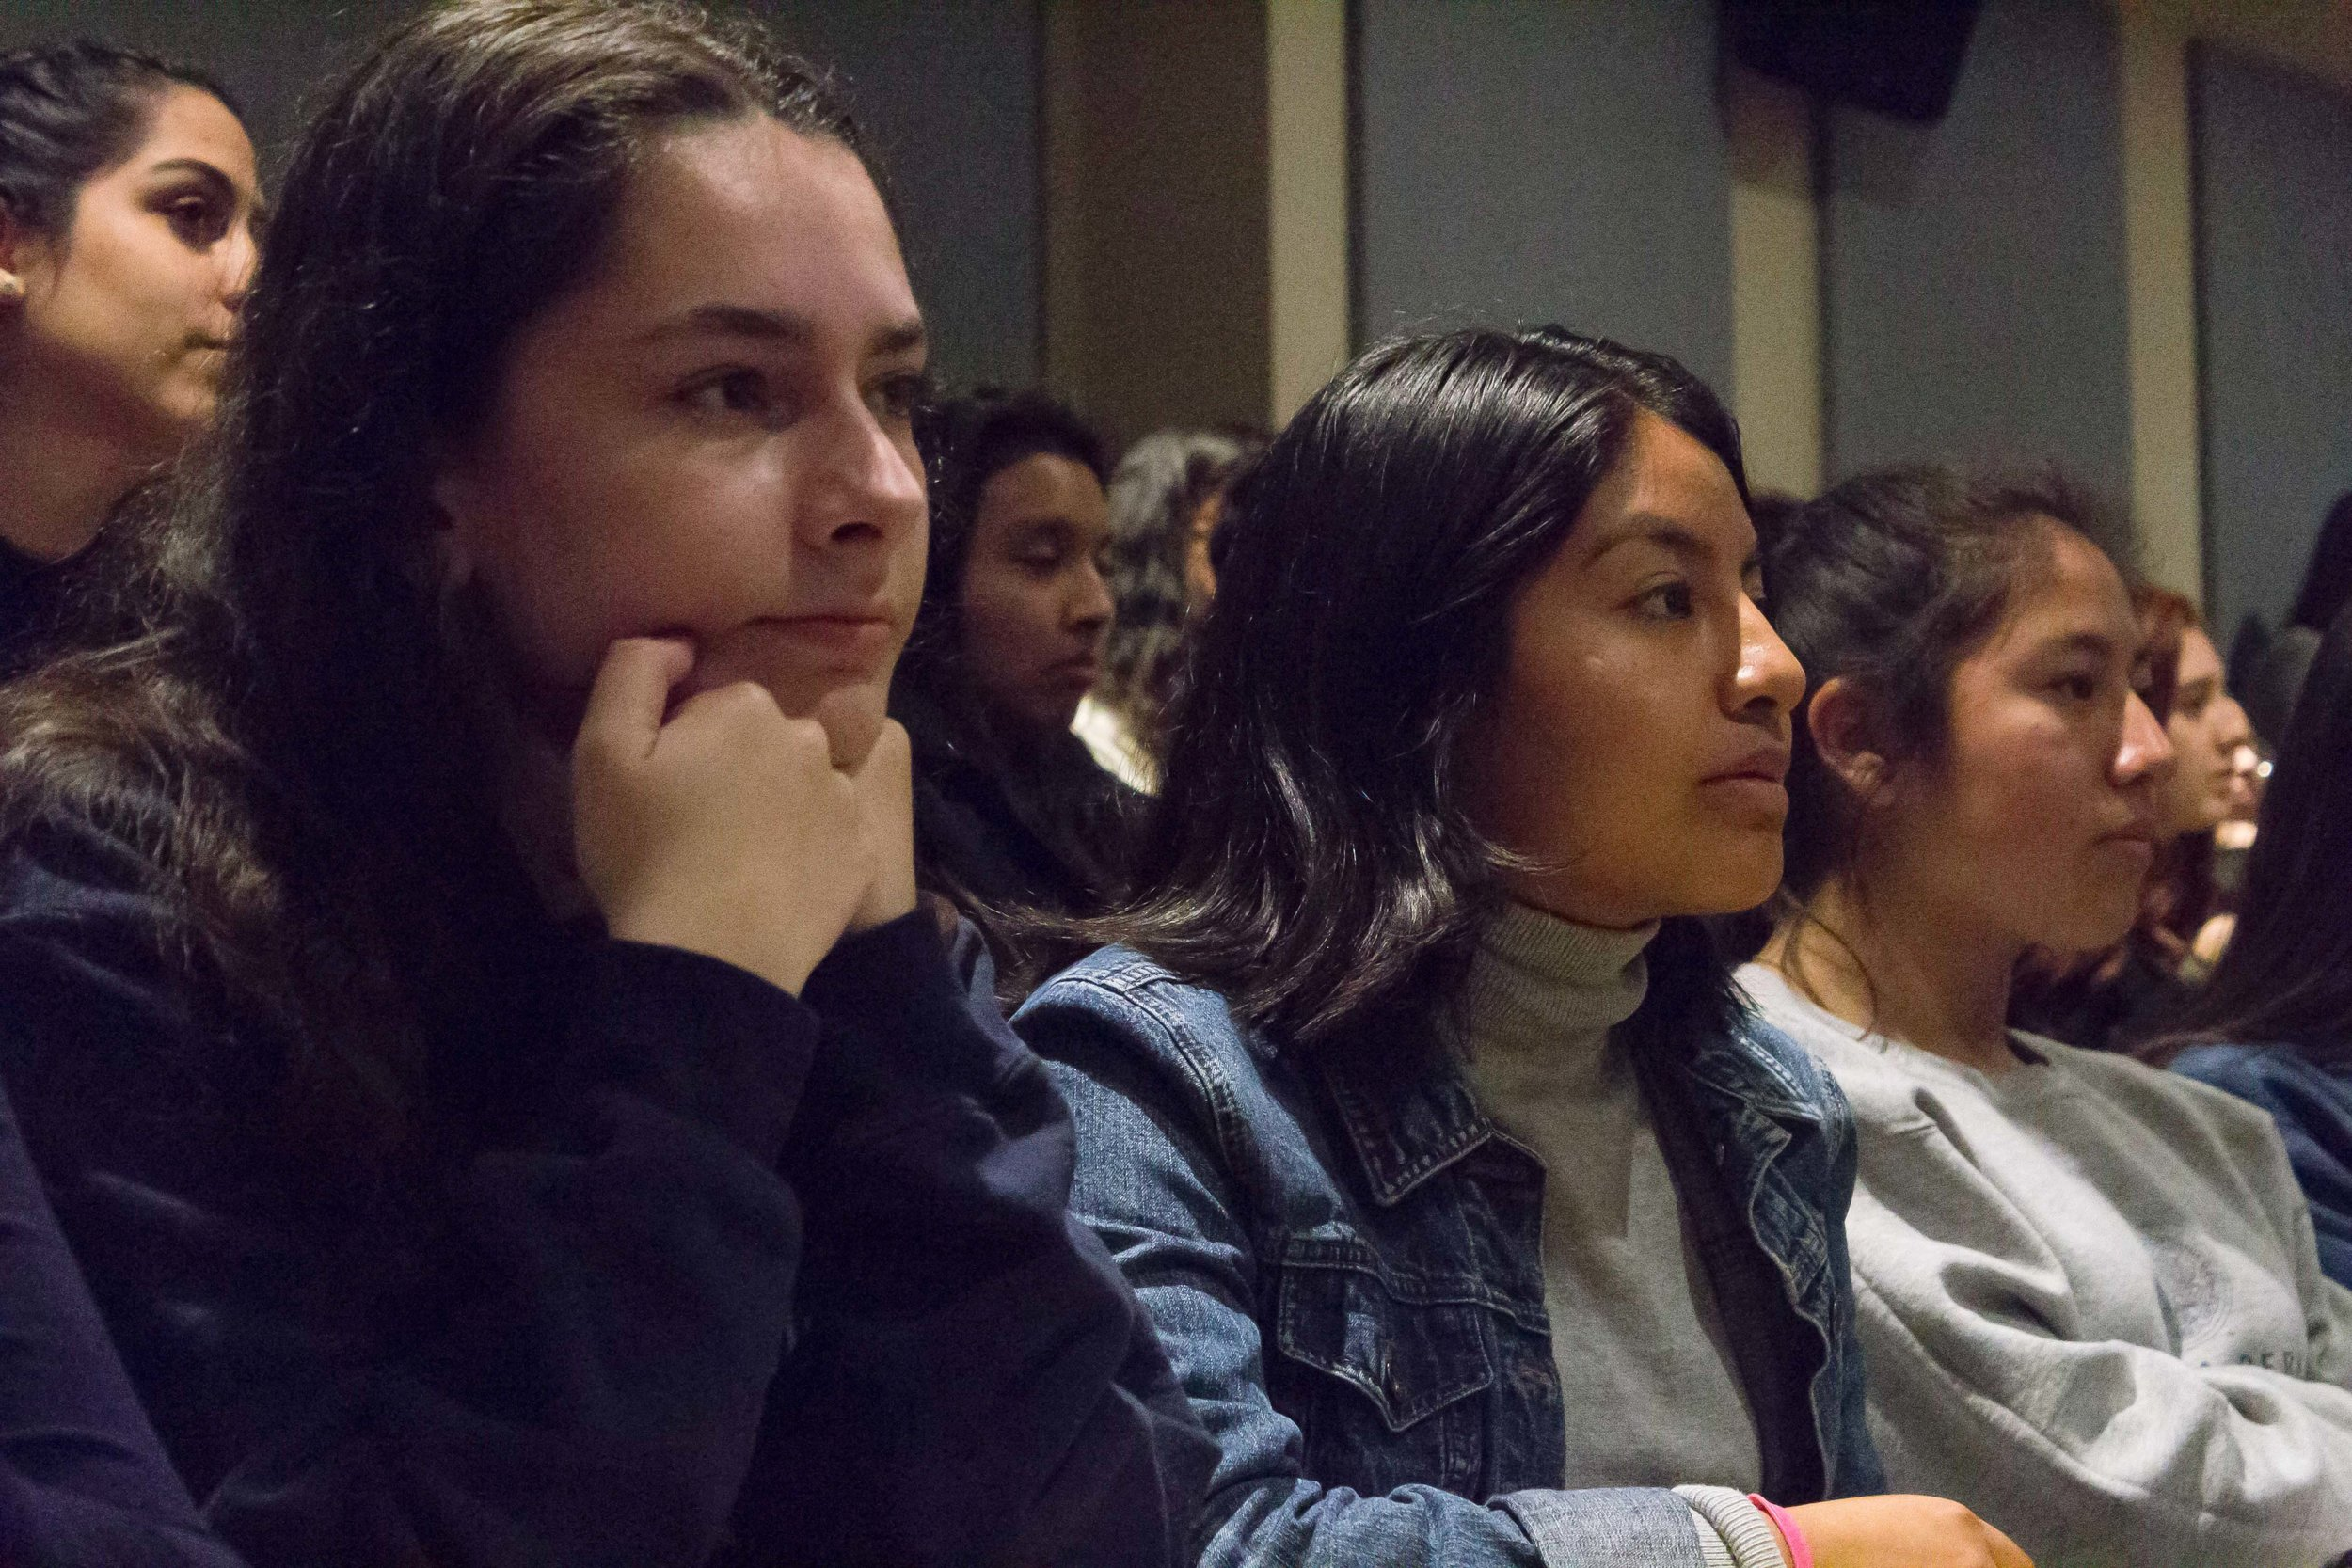 Chelsea Moran, 17 (left) and Melisa Ramirez Hernandez, 15 (middle), are students from Santa Monica High School. They came with 13 other students as a field trip through their Spanish program to see Jenny Lorenzo. The Award Winning YouTube star, talked to the students about promoting Latinx Voices in Social Media, at Santa Monica College, in Santa Monica, California, on Tuesday, March 20, 2018.  The room HSS165 and its 120 seats were full, about 15 students had to wait in the hallway, by the door. (Emeline Moquillon/ Corsair Photo)